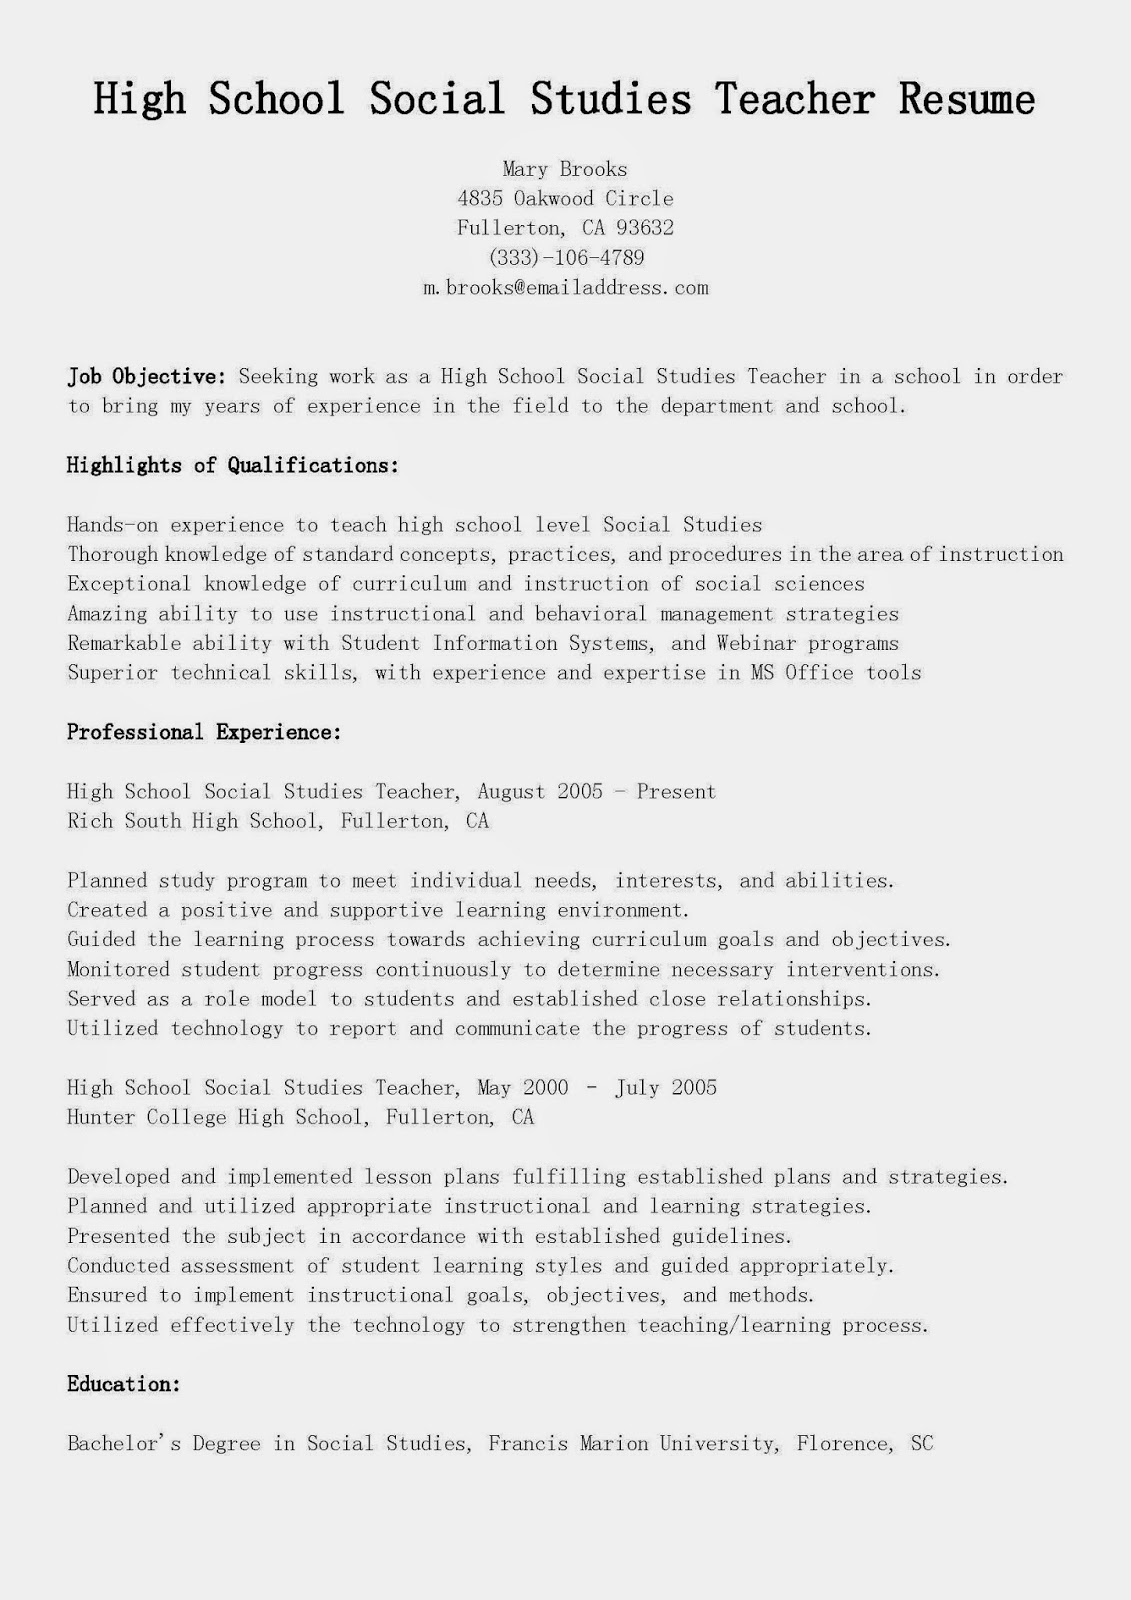 sample middle school social studies teacher resume